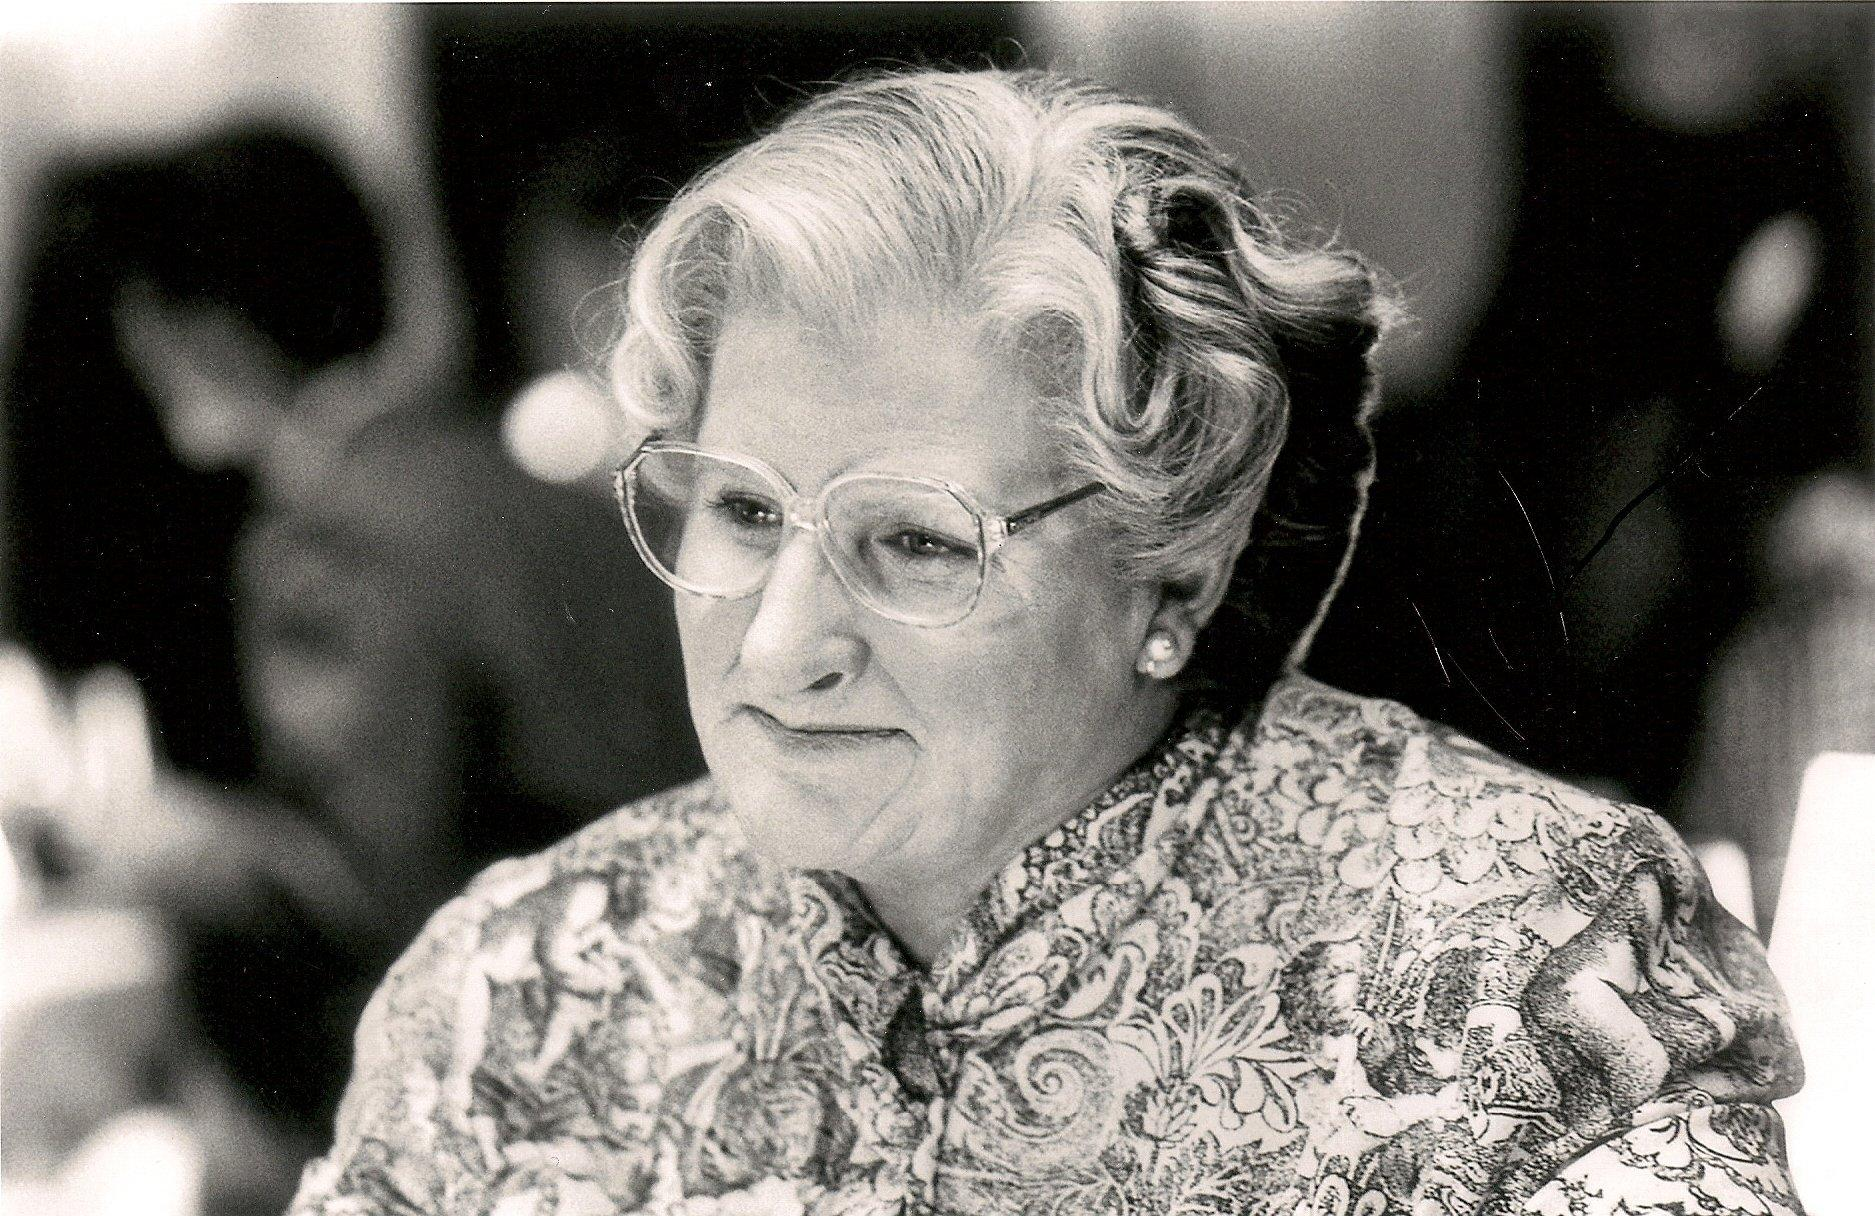 Mrs. Doubtfire Wallpapers and Backgrounds Image